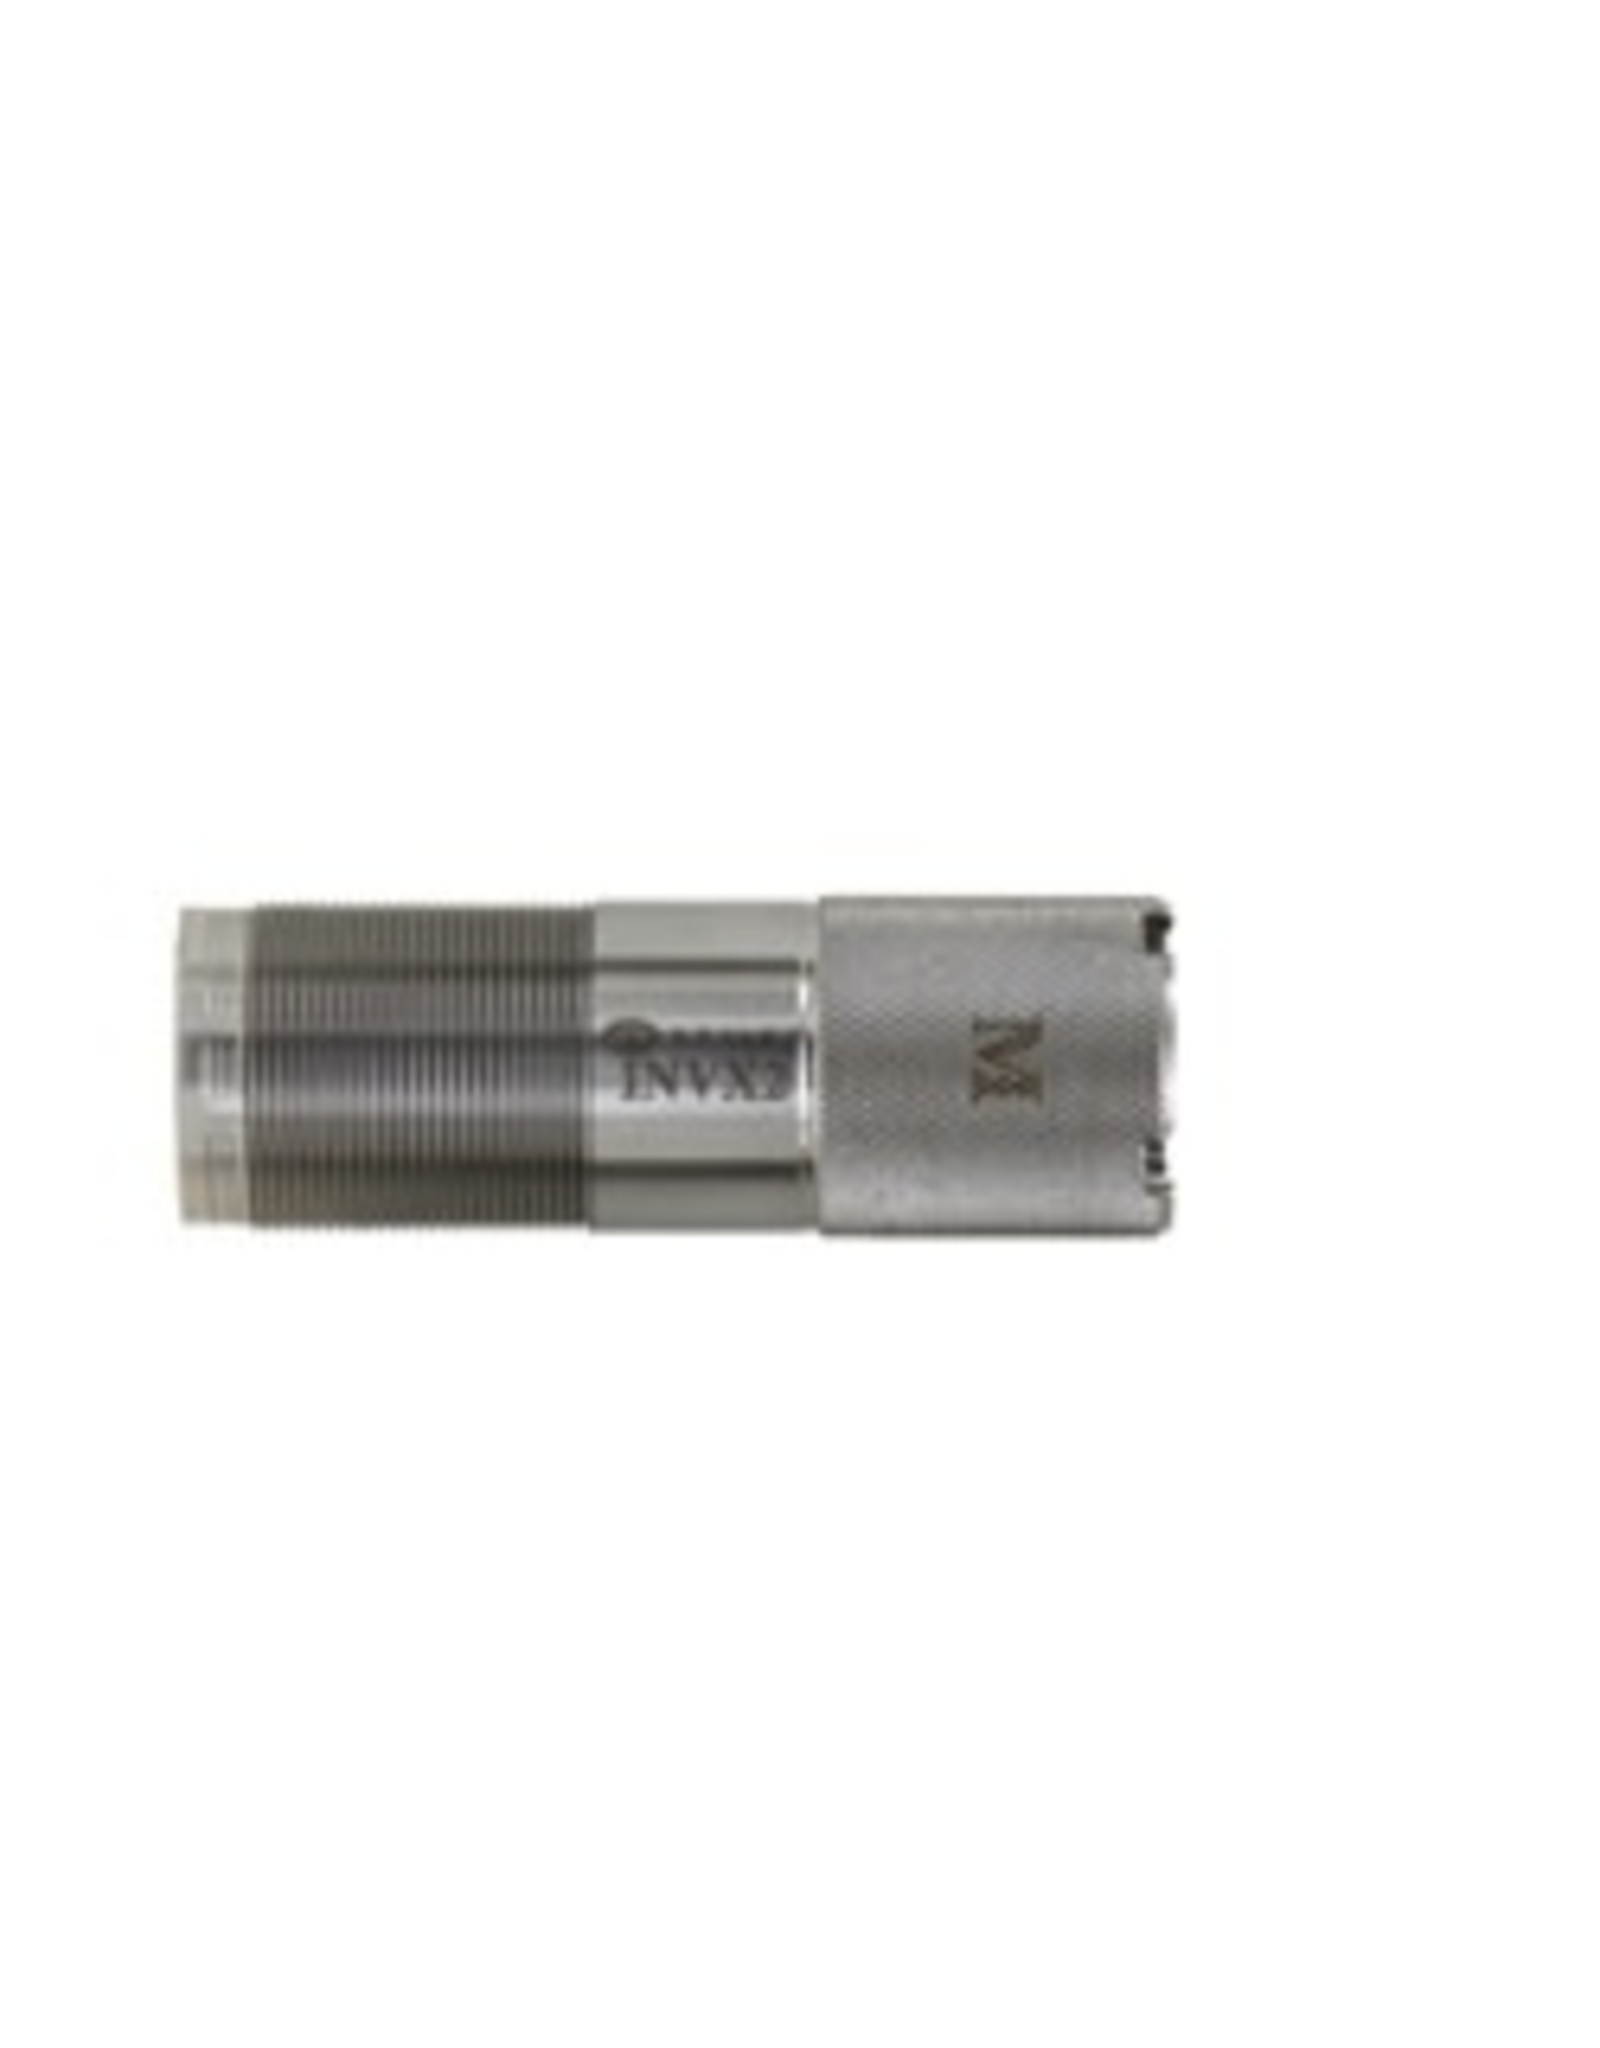 Briley Briley 28 ga Ext Stainless Browning Invector - Cylinder